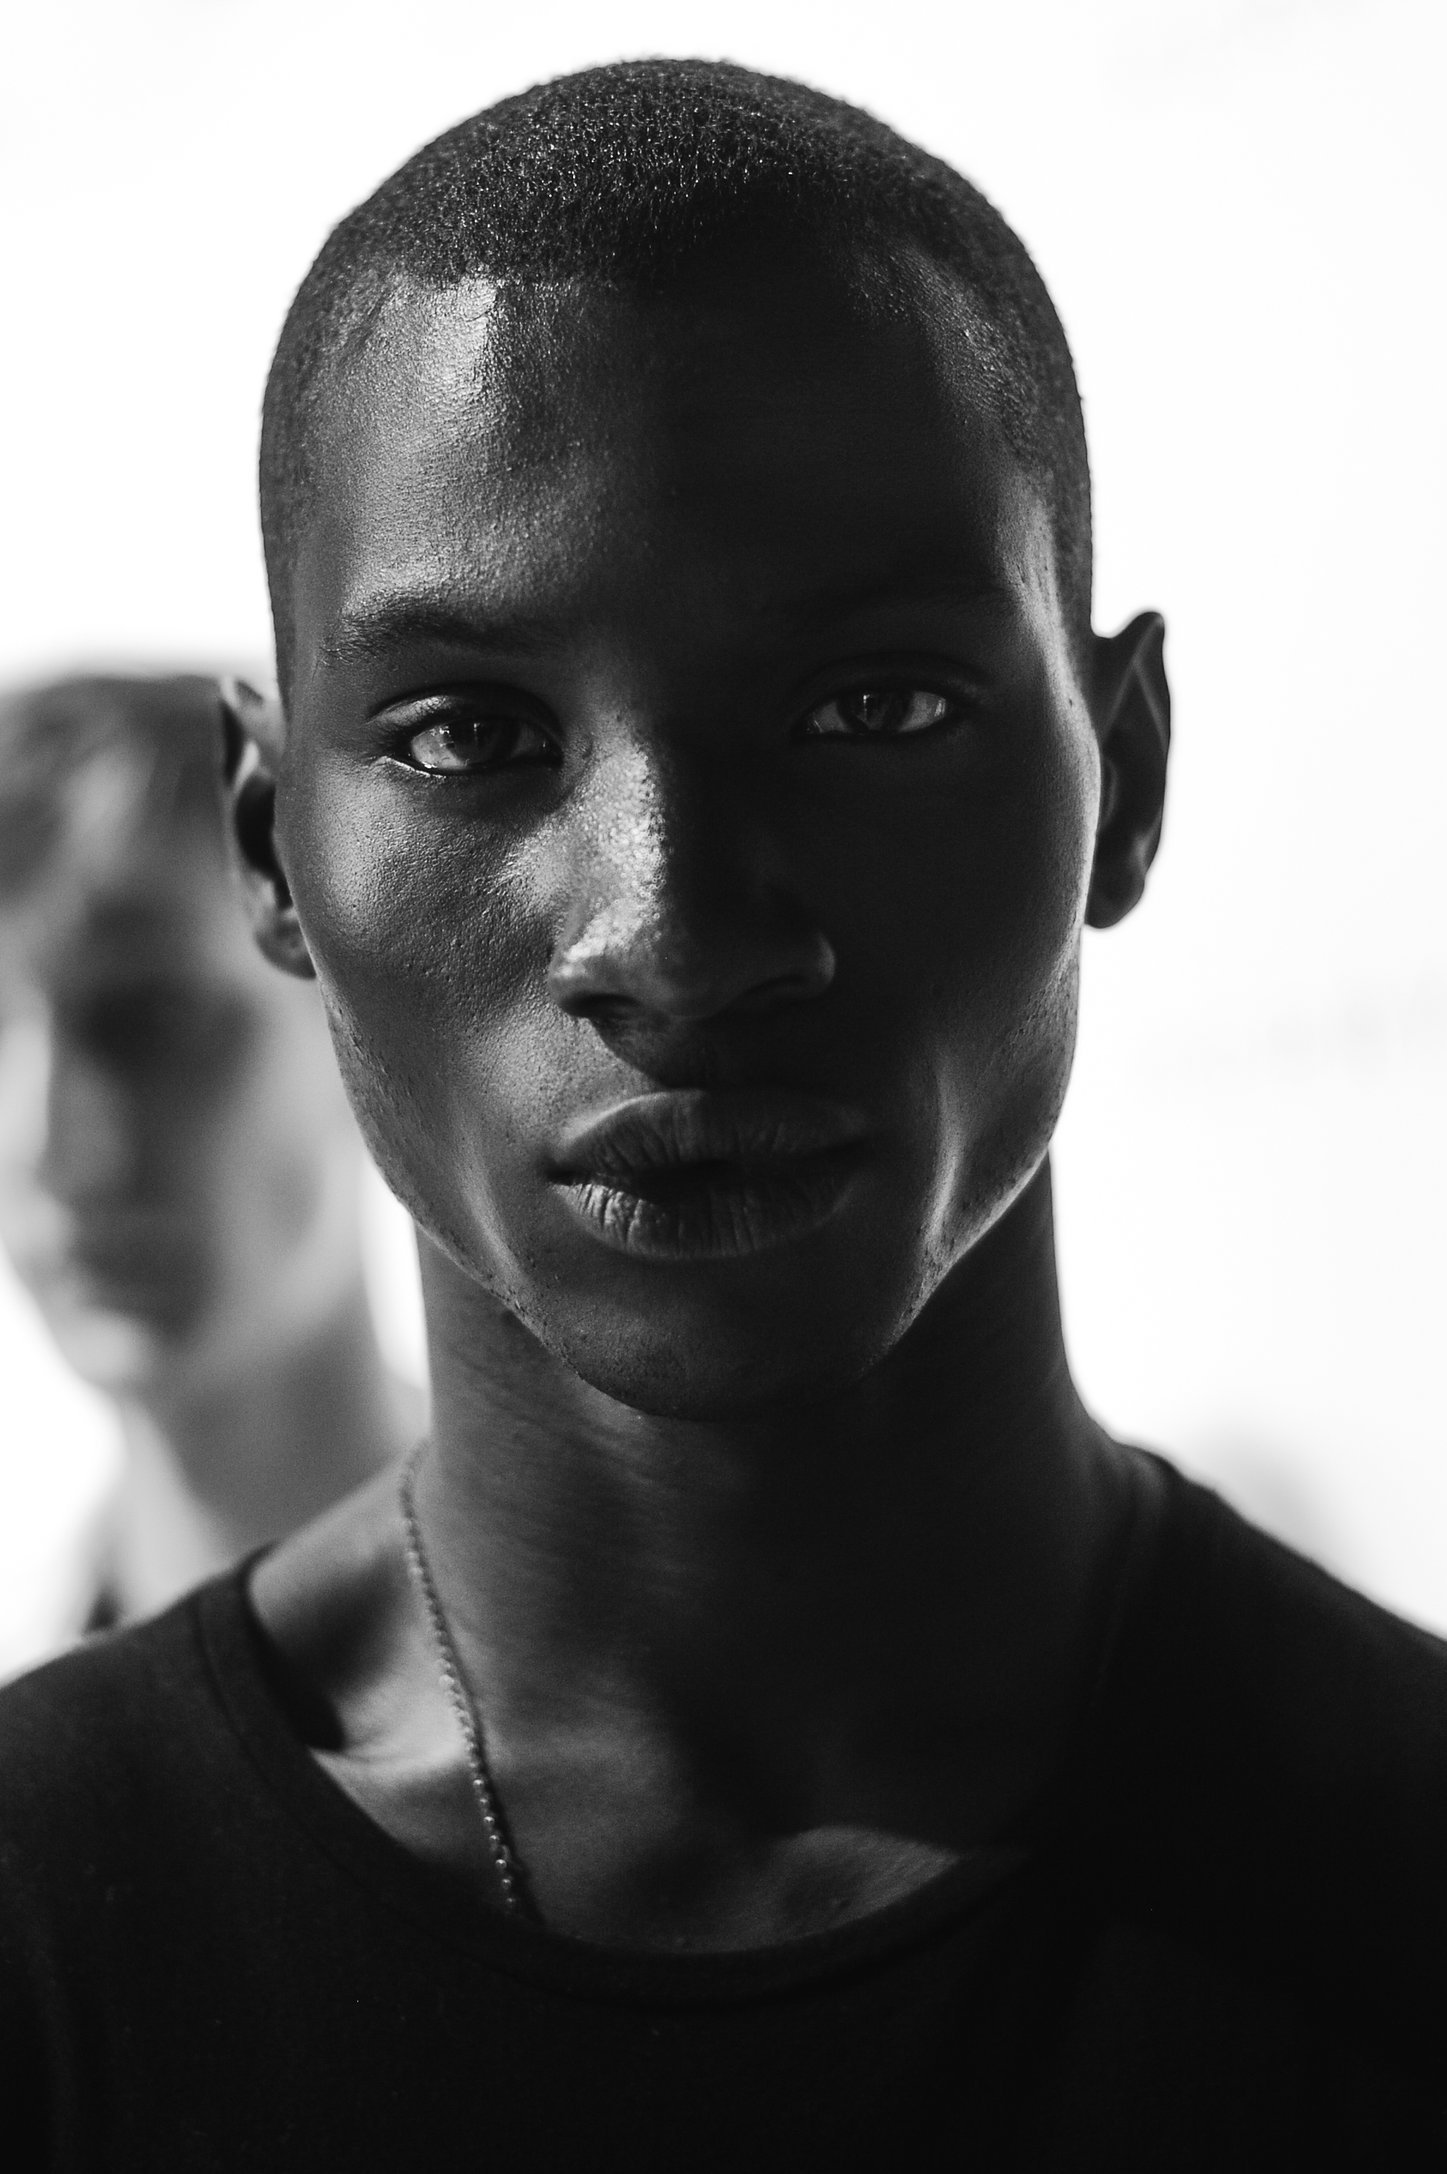 george-elder-photography-portrait-adonis-bosso-1.jpg